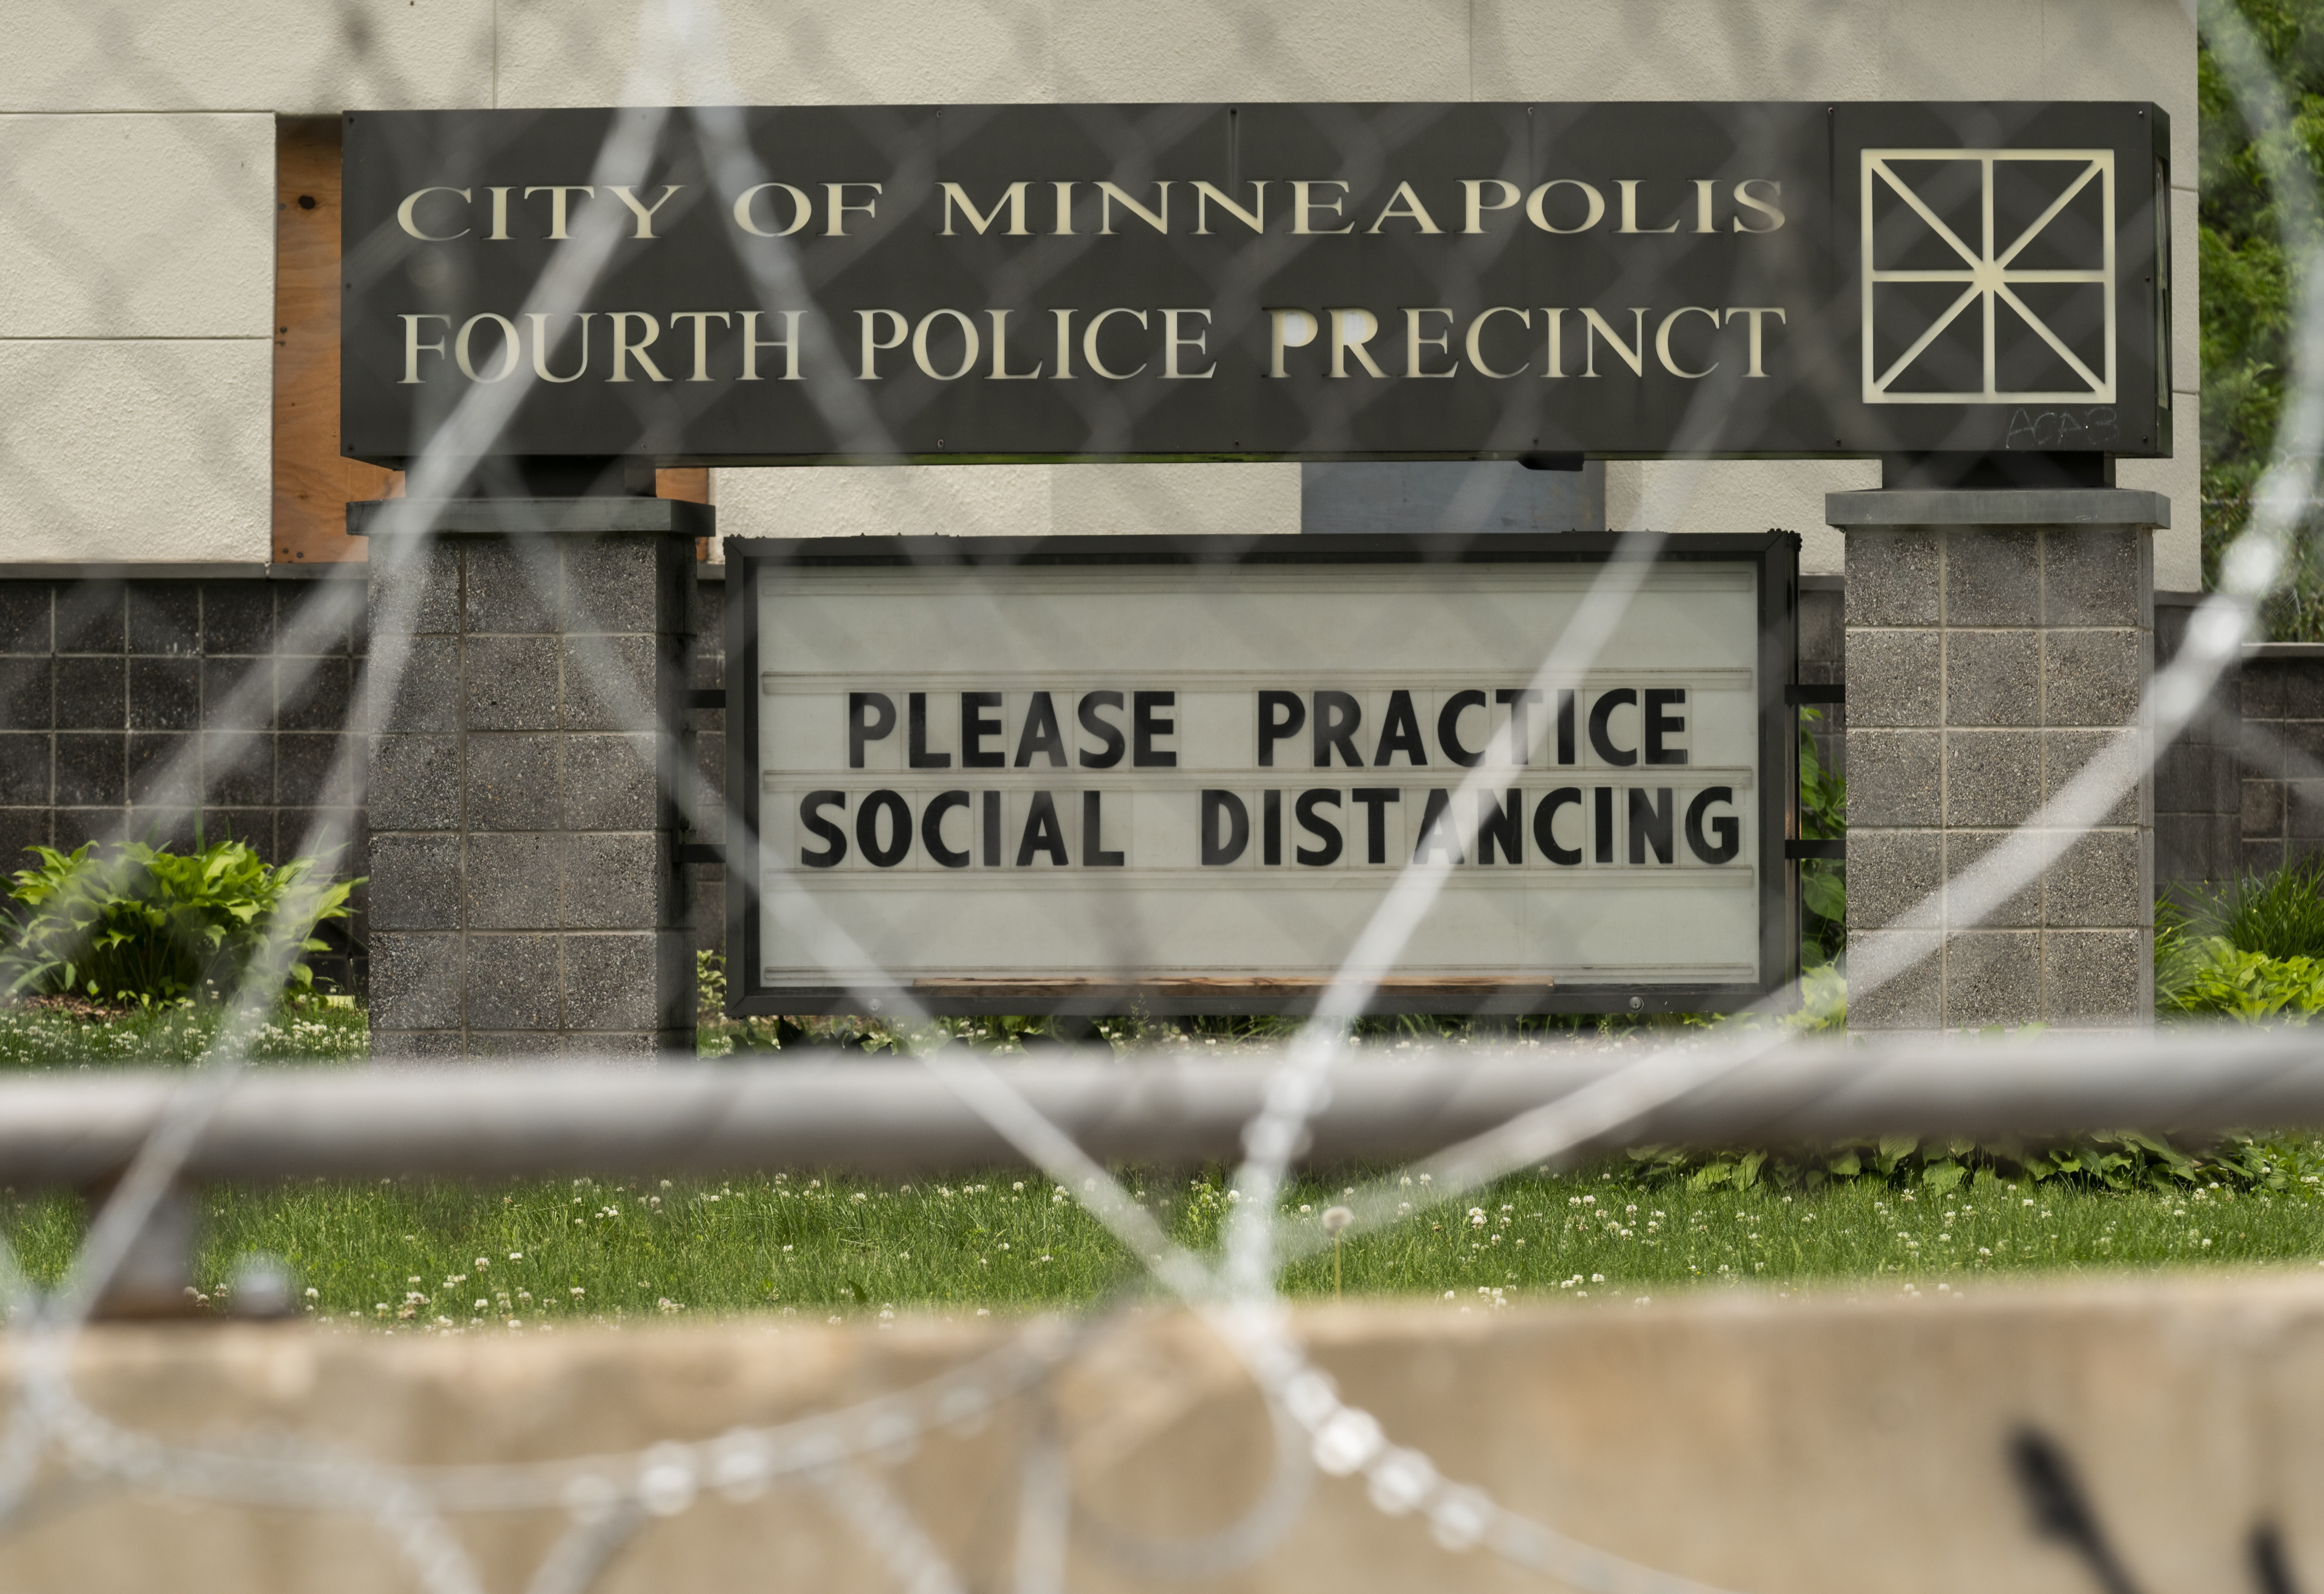 A general view outside the Fourth Precinct Police Station on June 9, 2020 in Minneapolis, Minnesota. (Photo by Stephen Maturen/Getty Images)